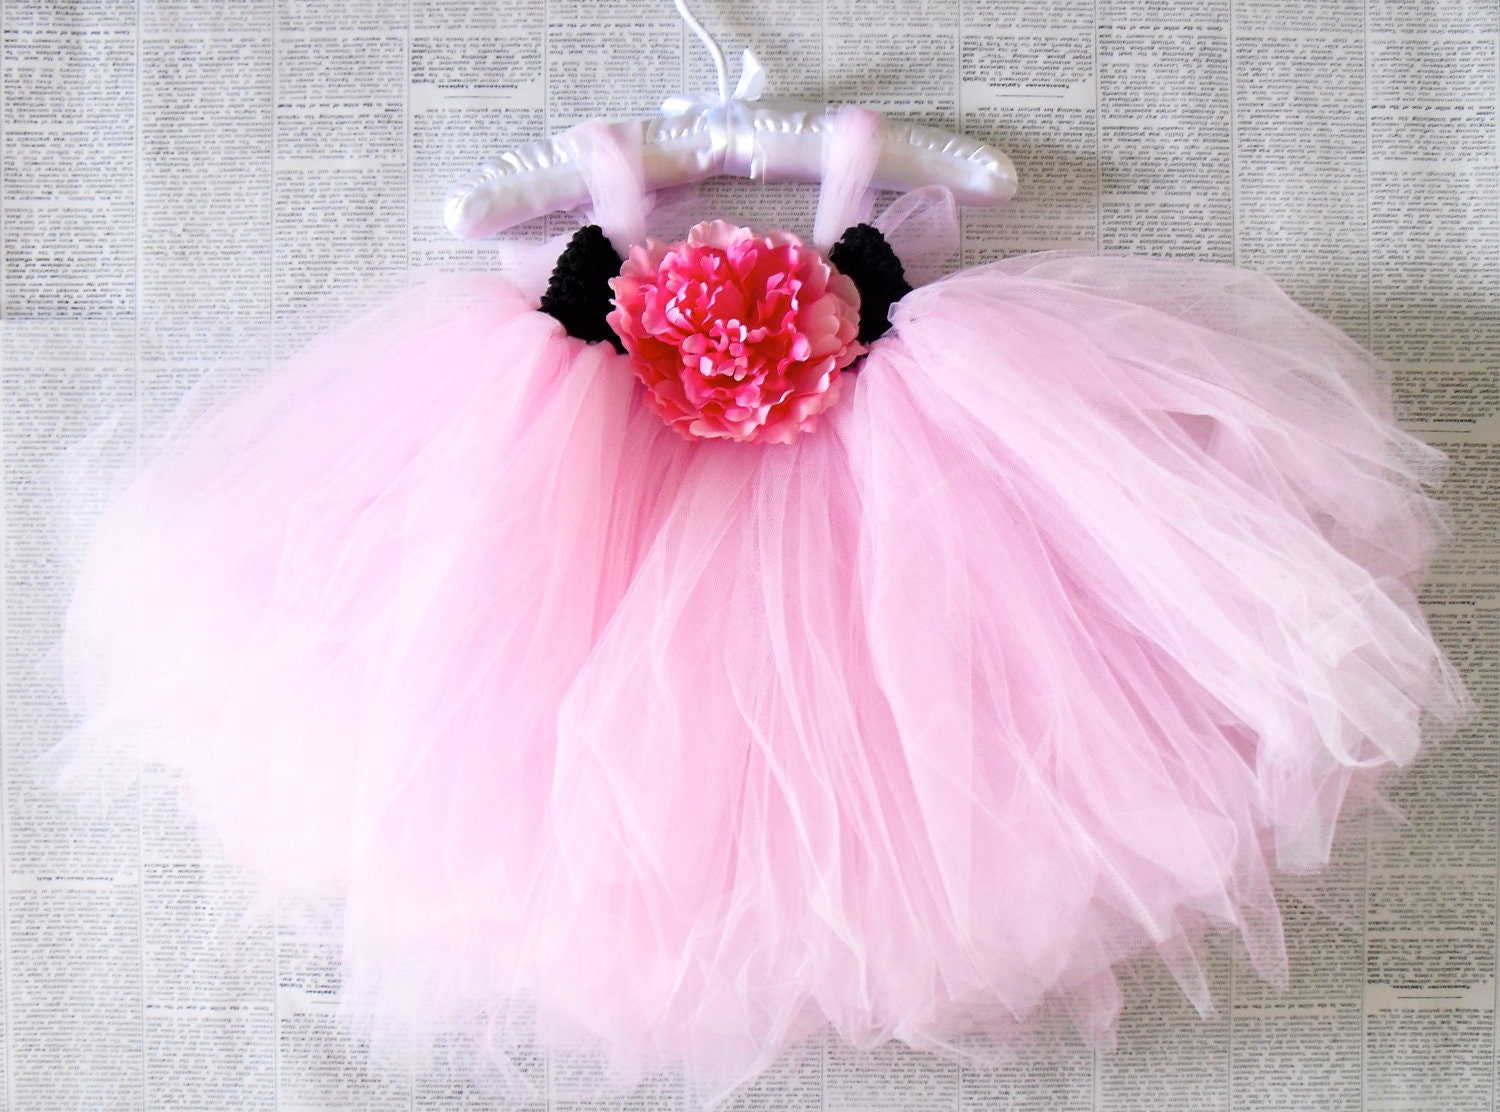 SUPER POOFY Pink tulle flower tutu - AveryandOliver